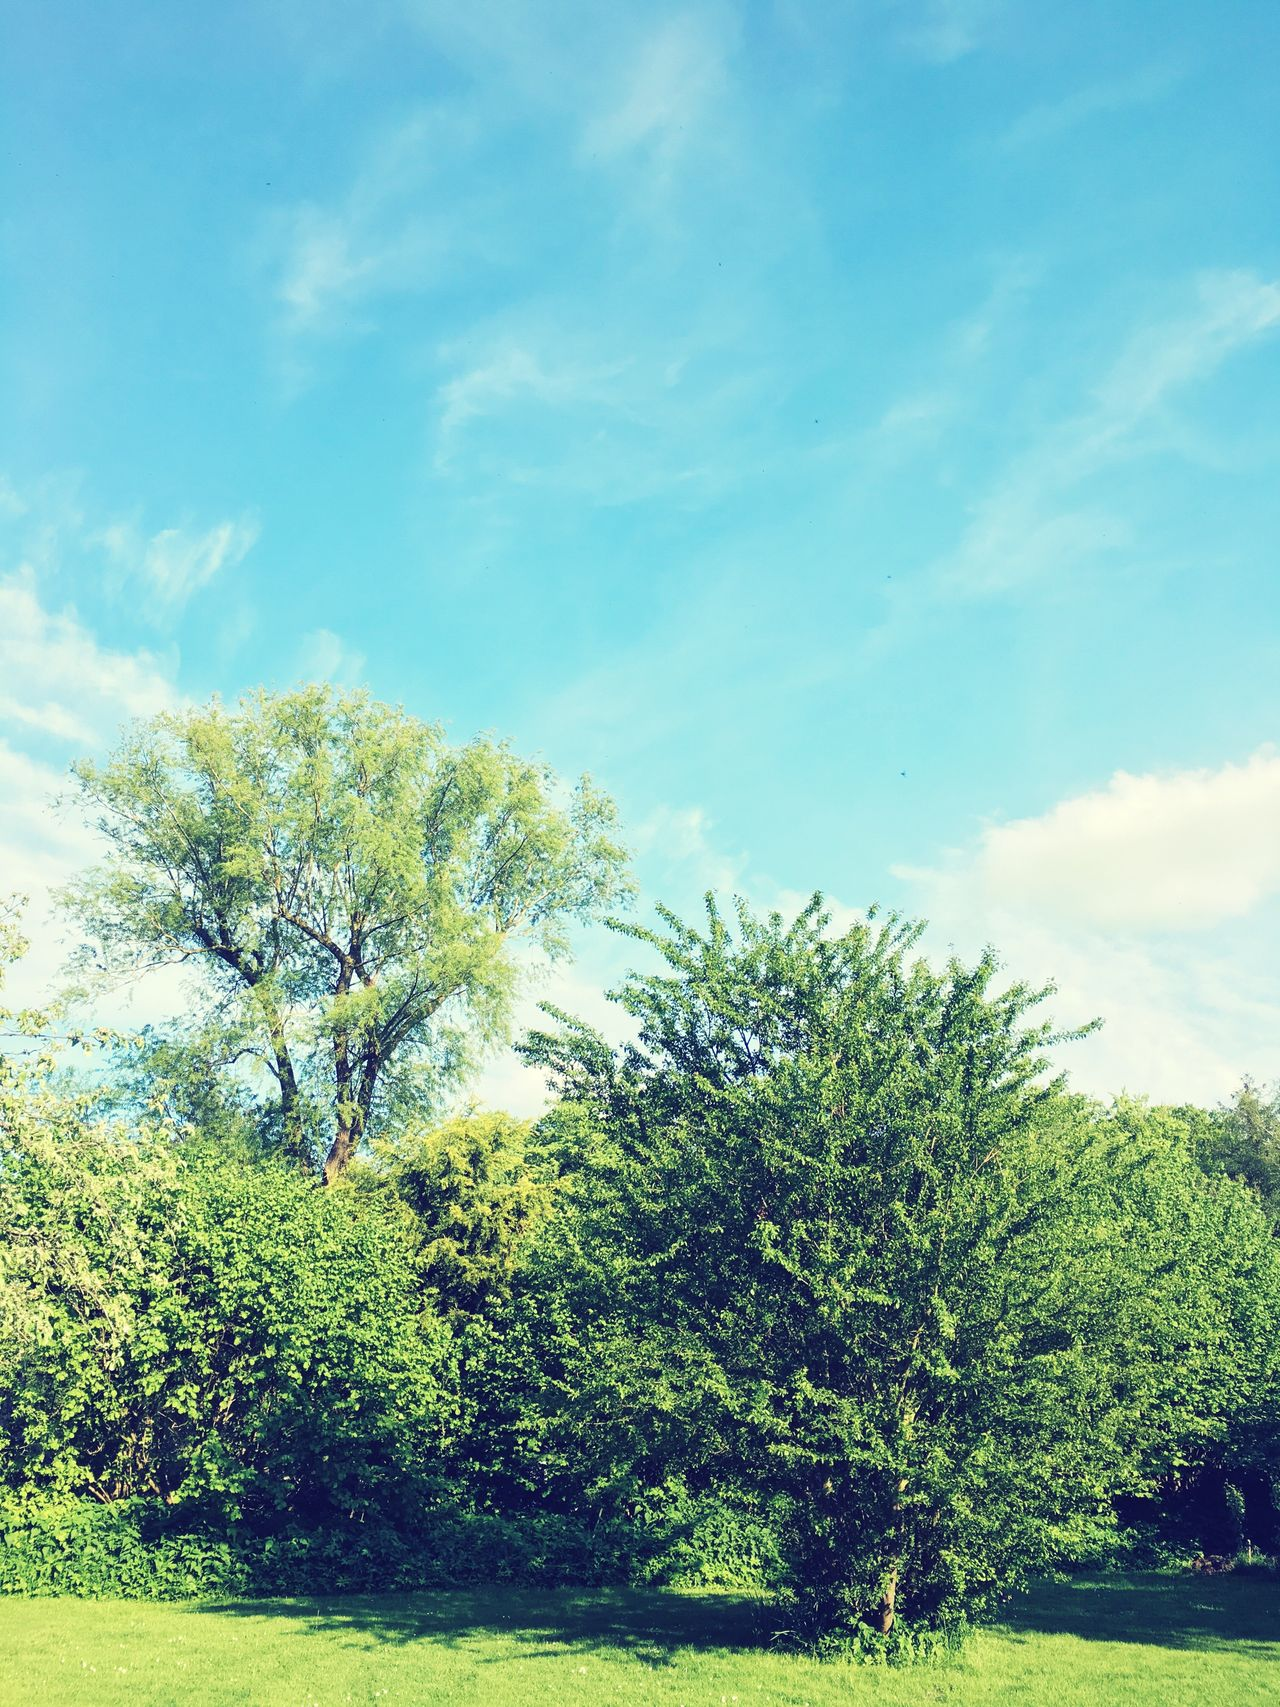 Tree Sky Growth Nature Day Cloud - Sky No People Beauty In Nature Tranquility Green Color Tranquil Scene Outdoors Scenics Low Angle View Landscape Plant Branch